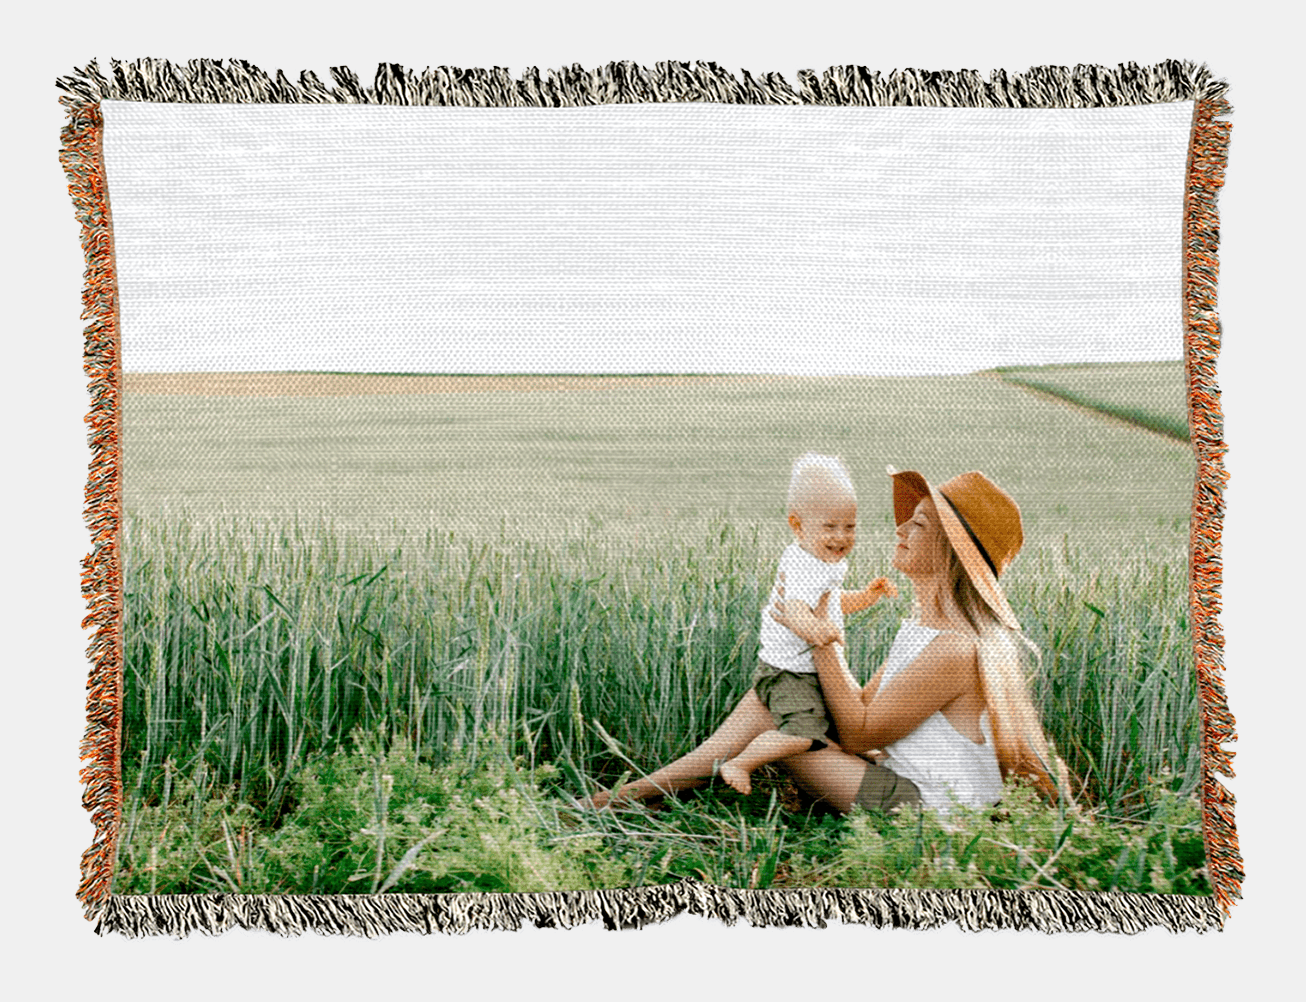 Gift a custom photo blanket for Mother's Day this year